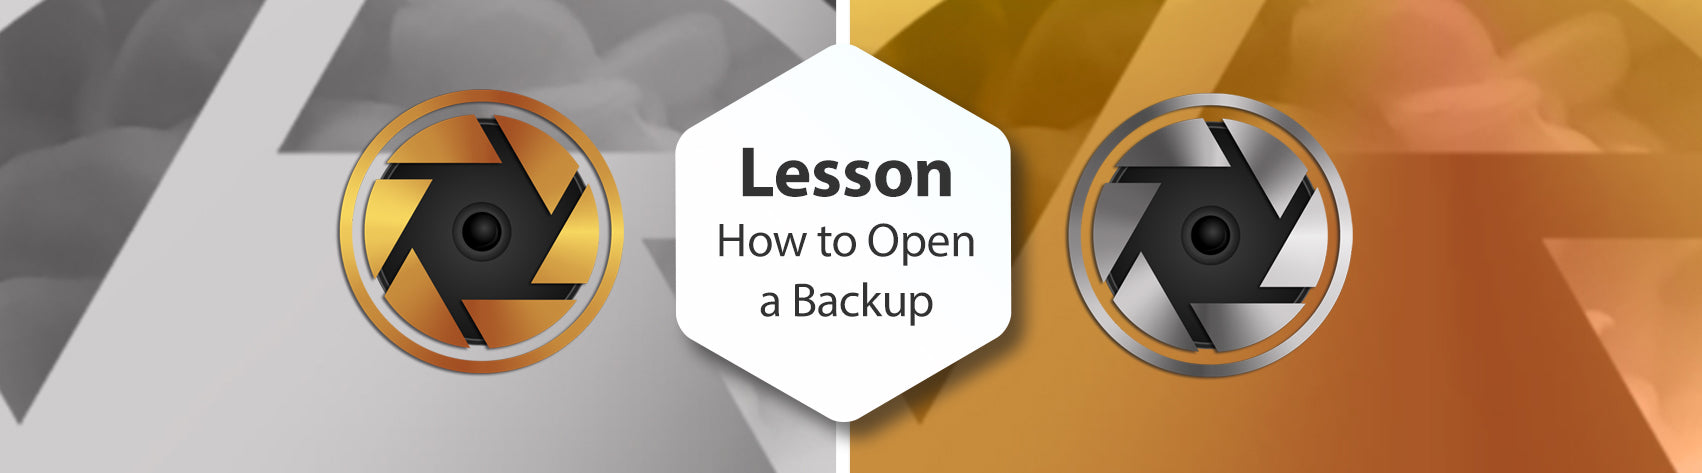 Lesson - How to Open a Backup